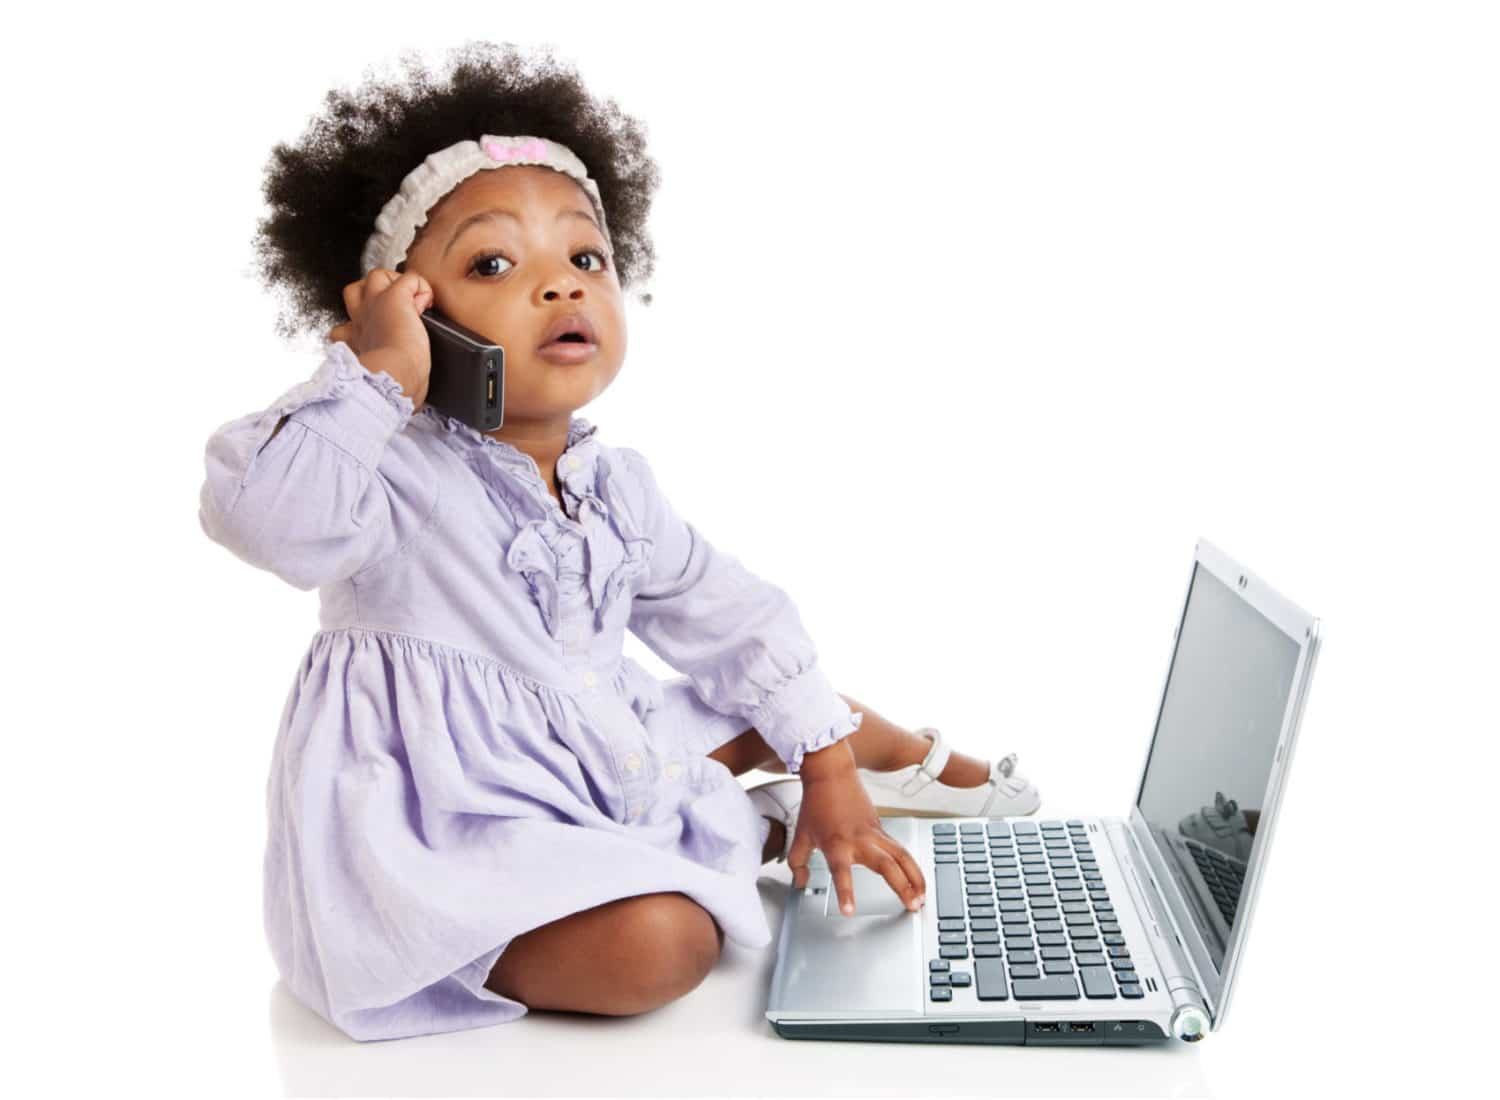 small child in purple dress sitting on floor with a telephone to her ear, touching a laptop - communication app